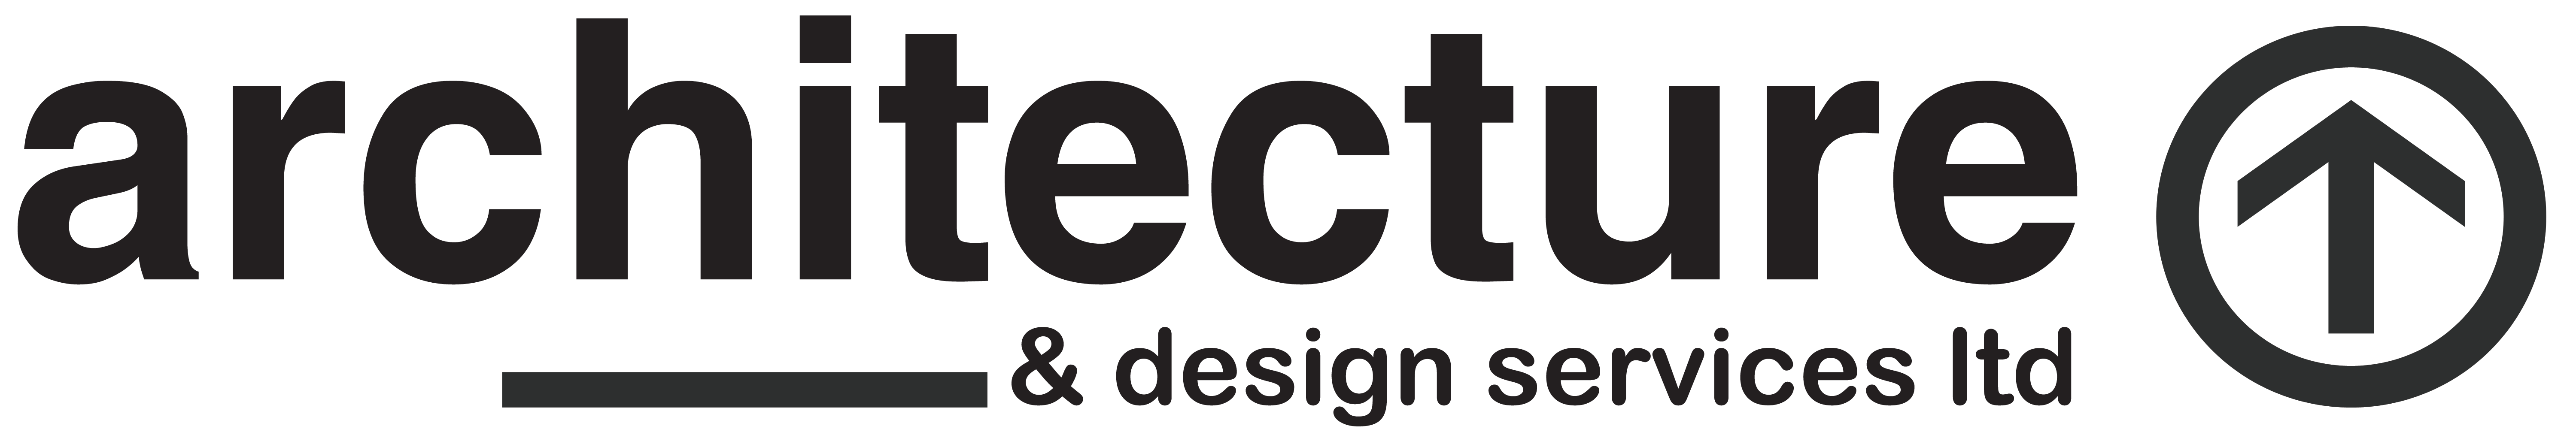 Architecture and design services ltd logo